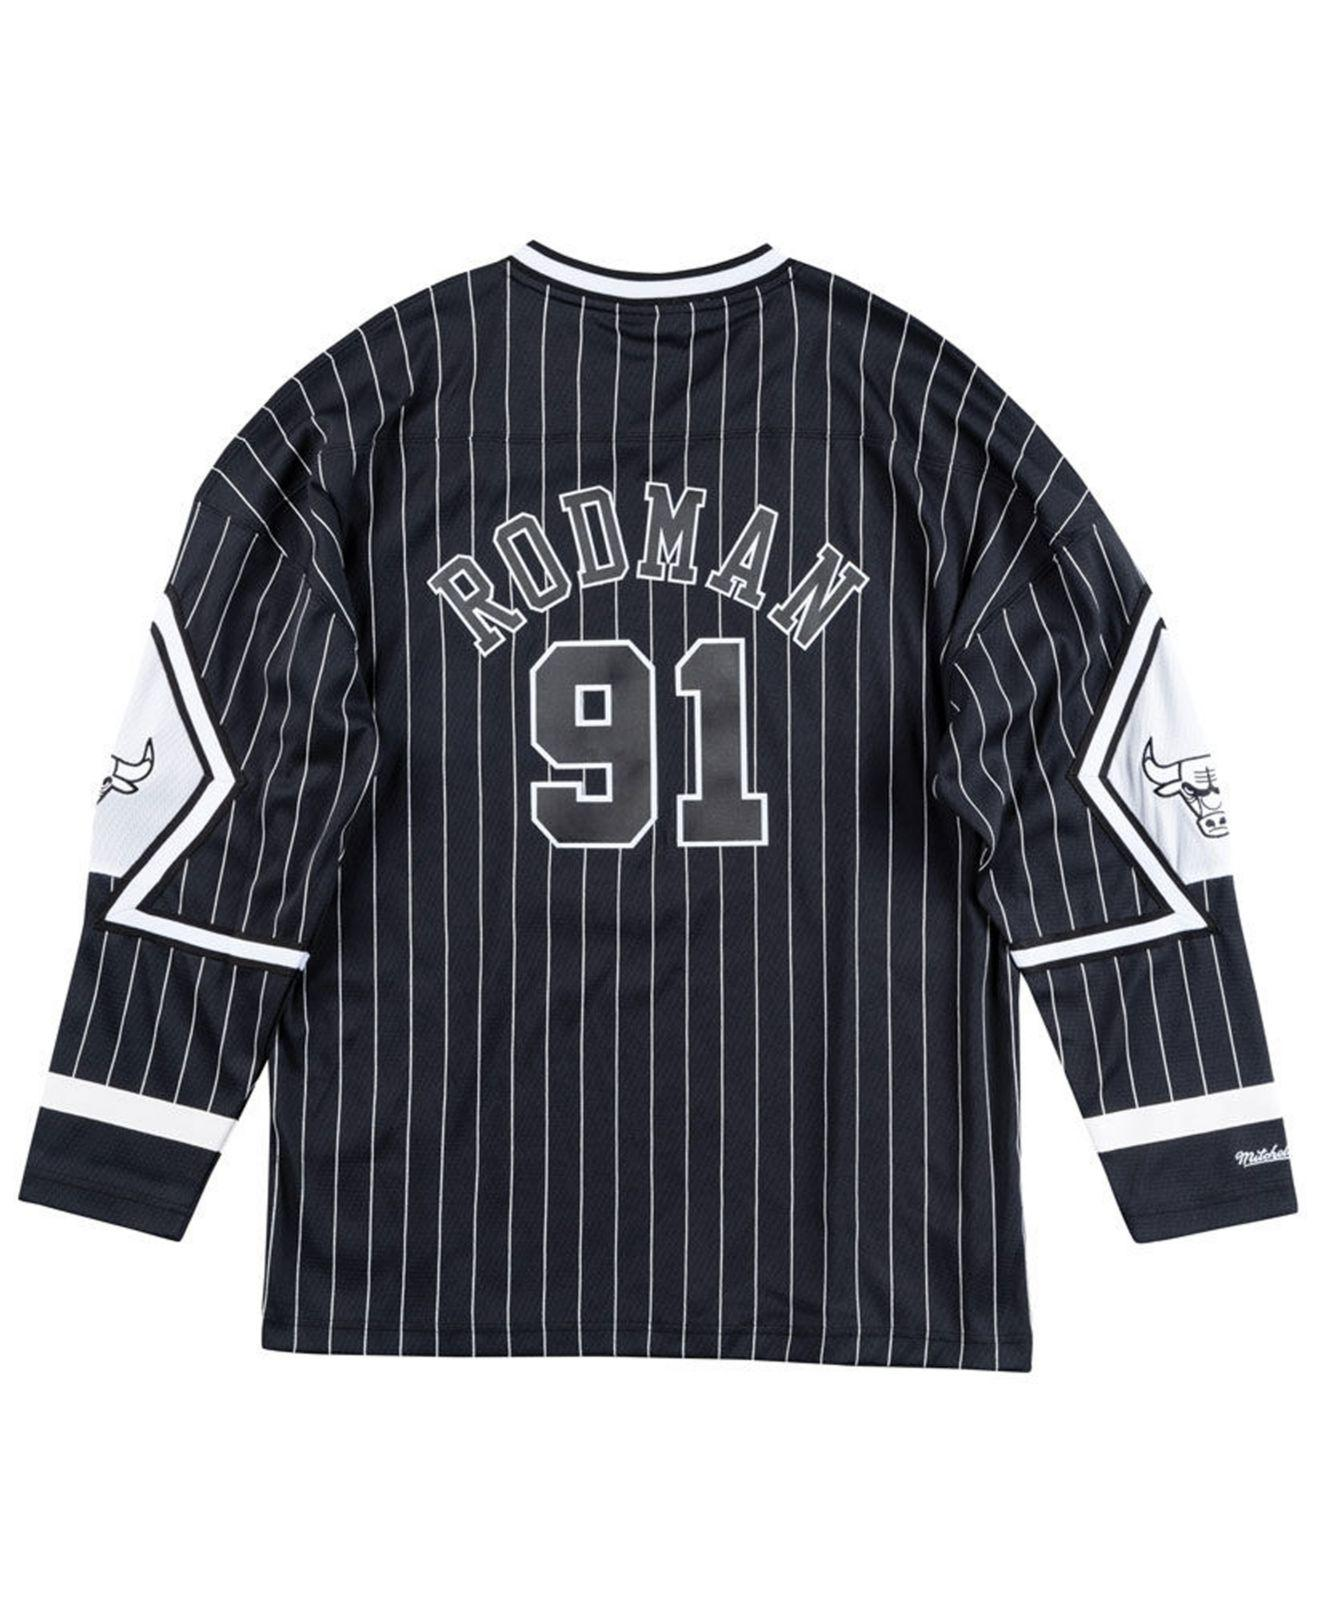 c09f35db5 Lyst - Mitchell   Ness Dennis Rodman Chicago Bulls Concord Collection Jersey  in Black for Men